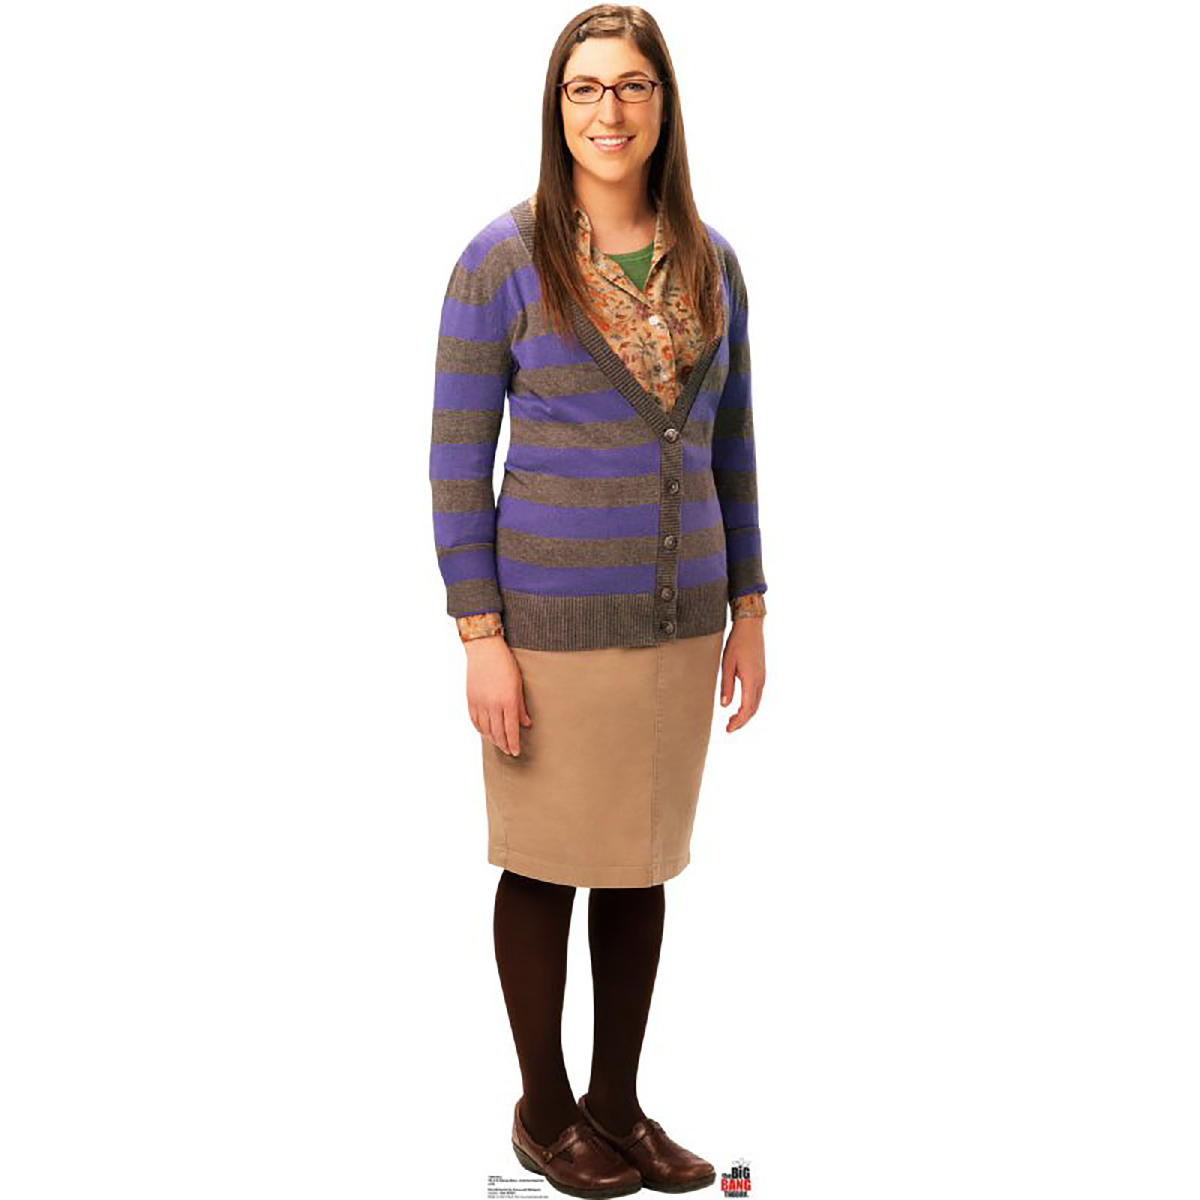 The Big Bang Theory Amy Standup - Toys & Games 2870-447177